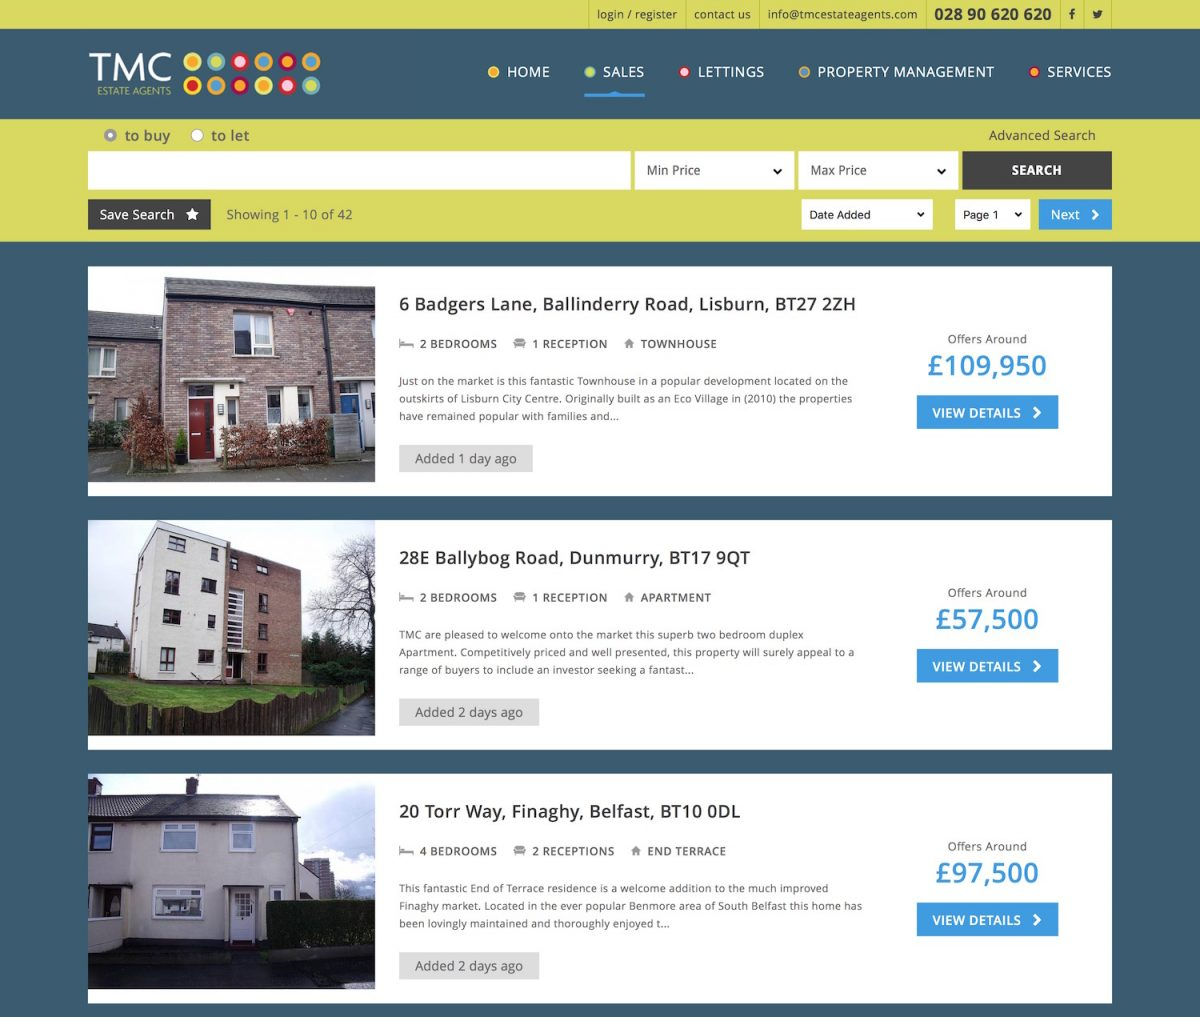 Properties for sale at TMC estate agents Northern Ireland 691